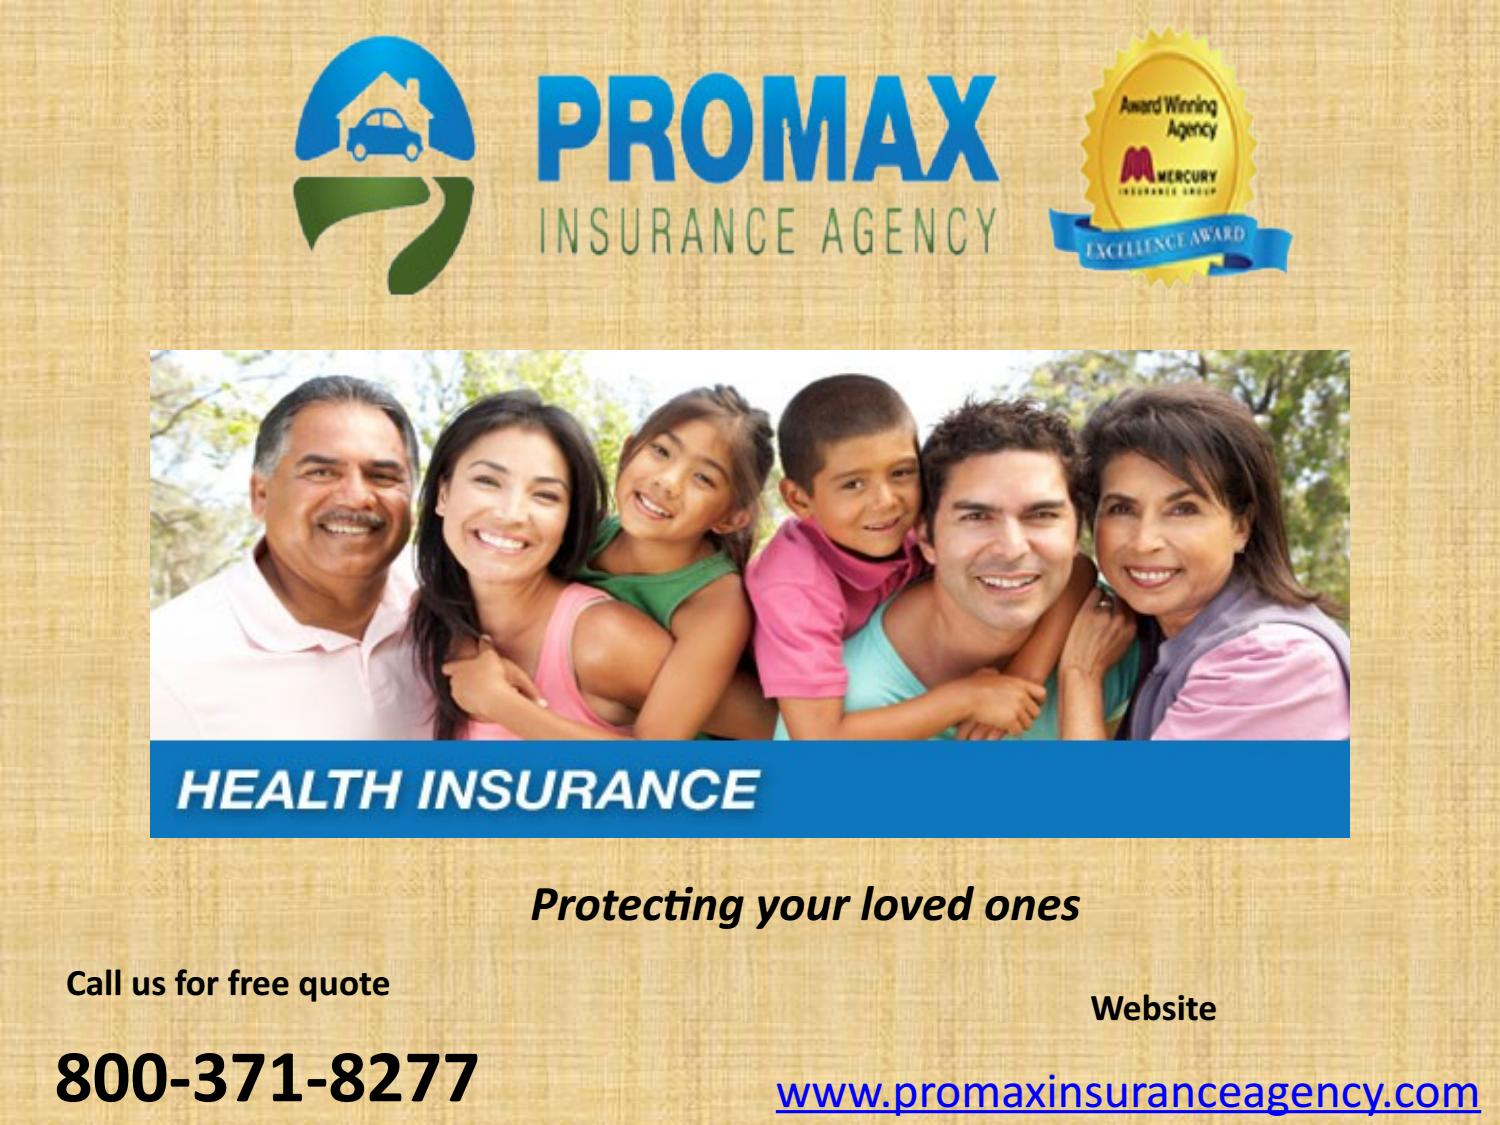 Low cost health insurance in california by Promax ...